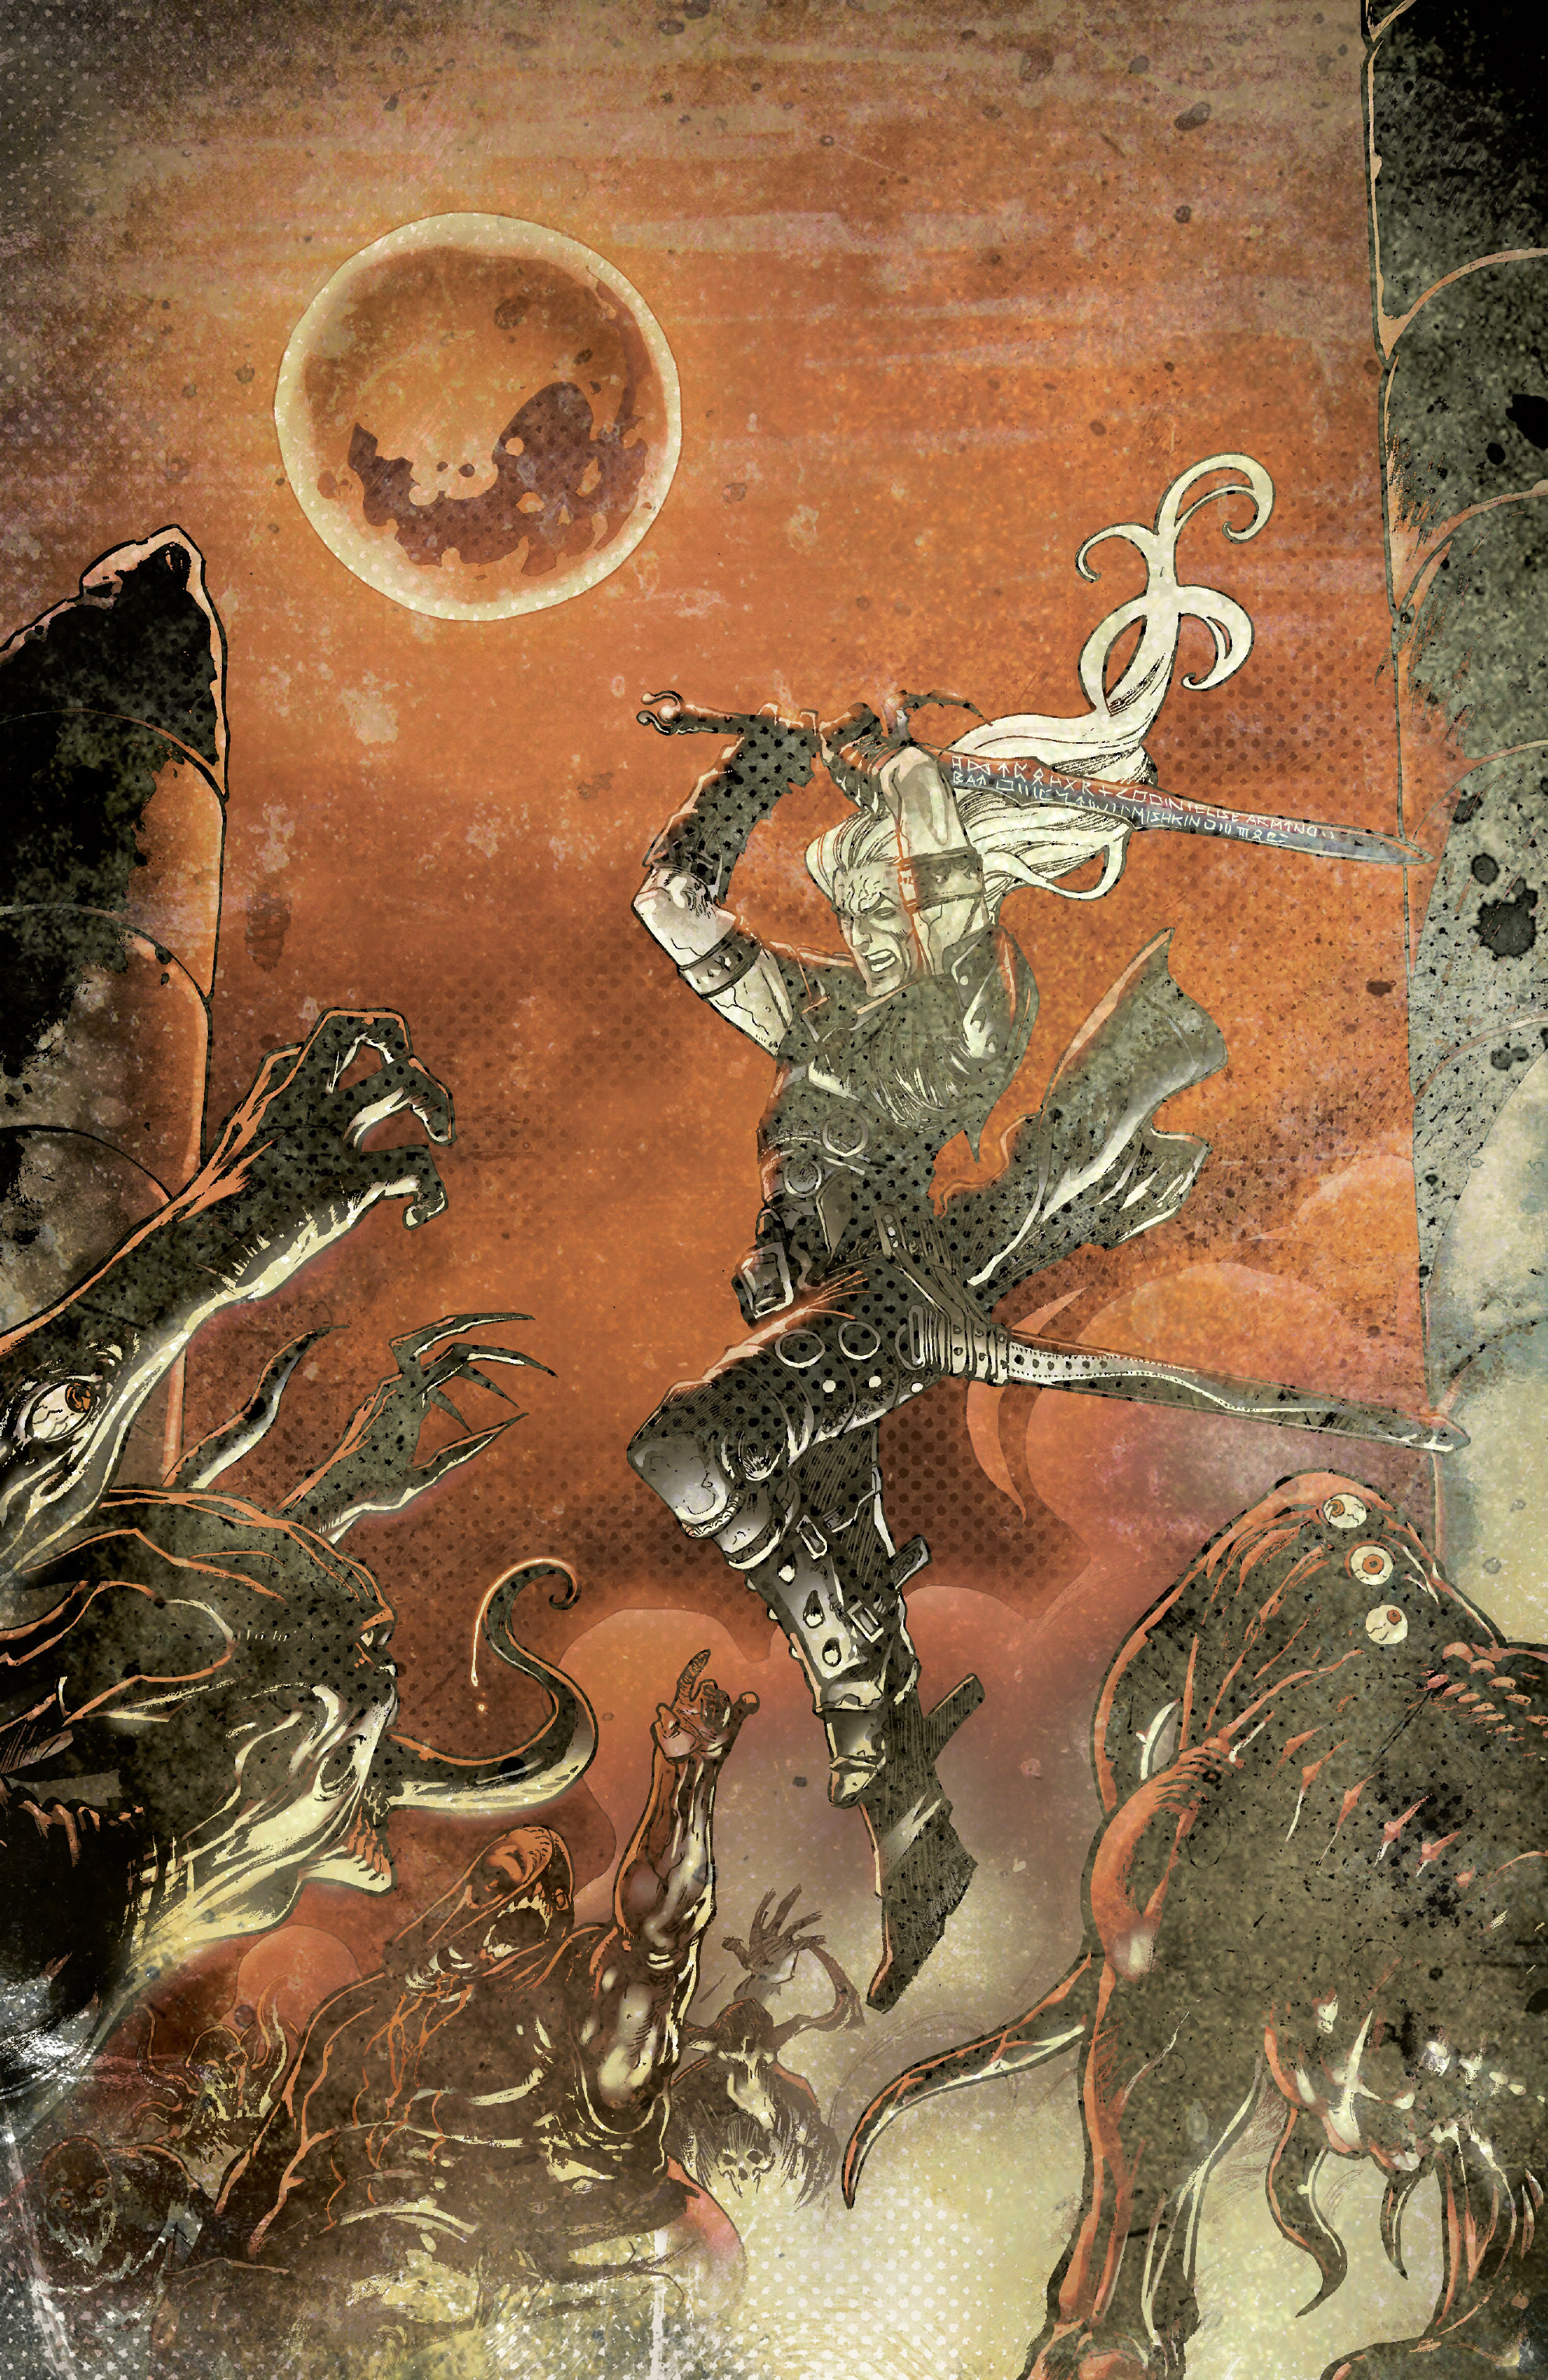 Read online Elric: The Balance Lost comic -  Issue # TPB 2 - 26